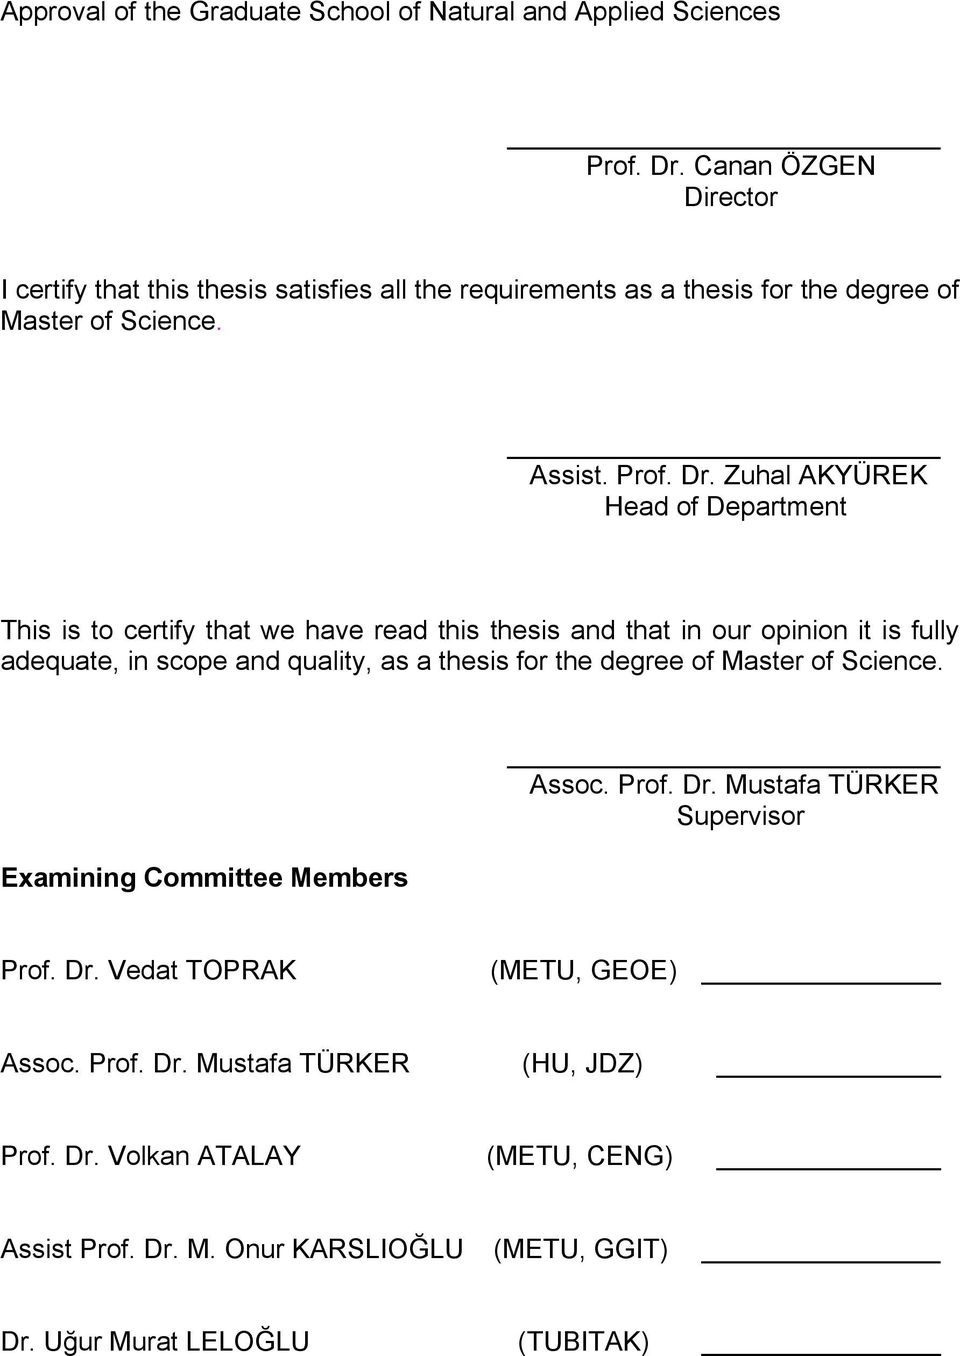 ctor I certfy that ths thess satsfes all the requrements as a thess for the degree of Master of Scence. Assst. Prof. Dr.